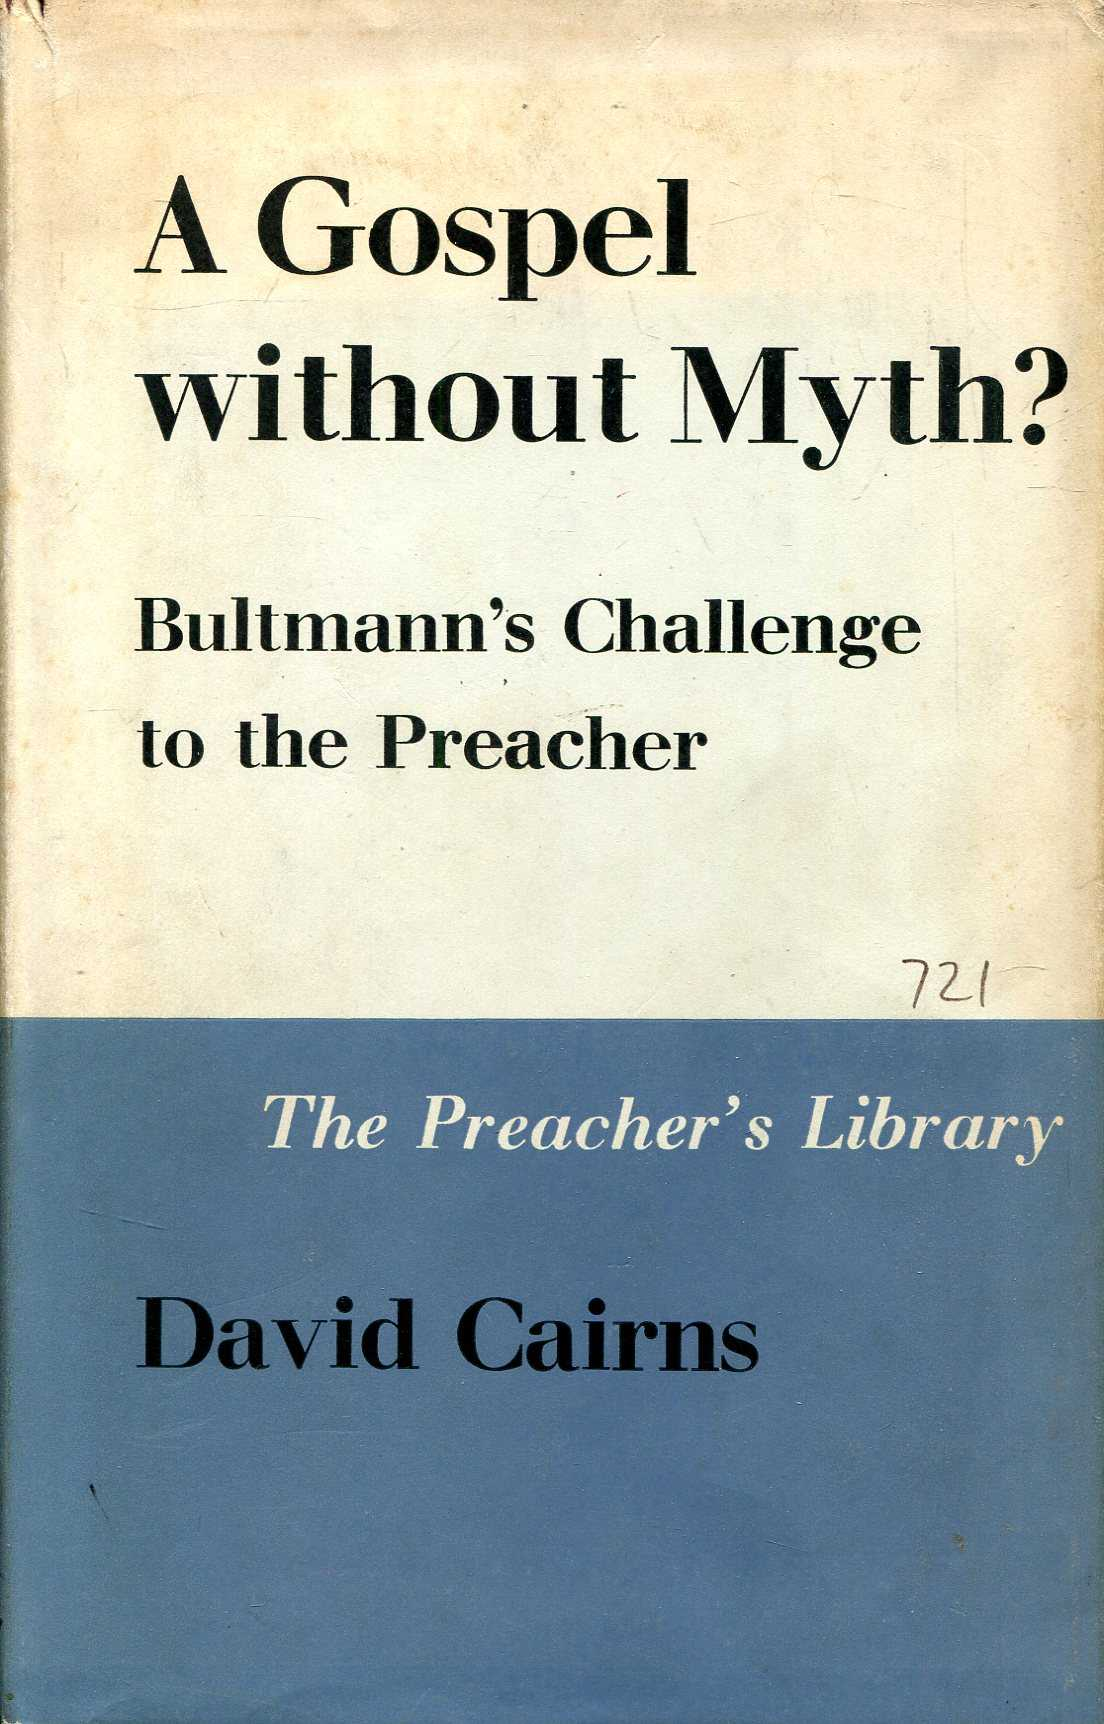 Image for A Gospel Without Myth? Bultmann's Challenge to the Preacher